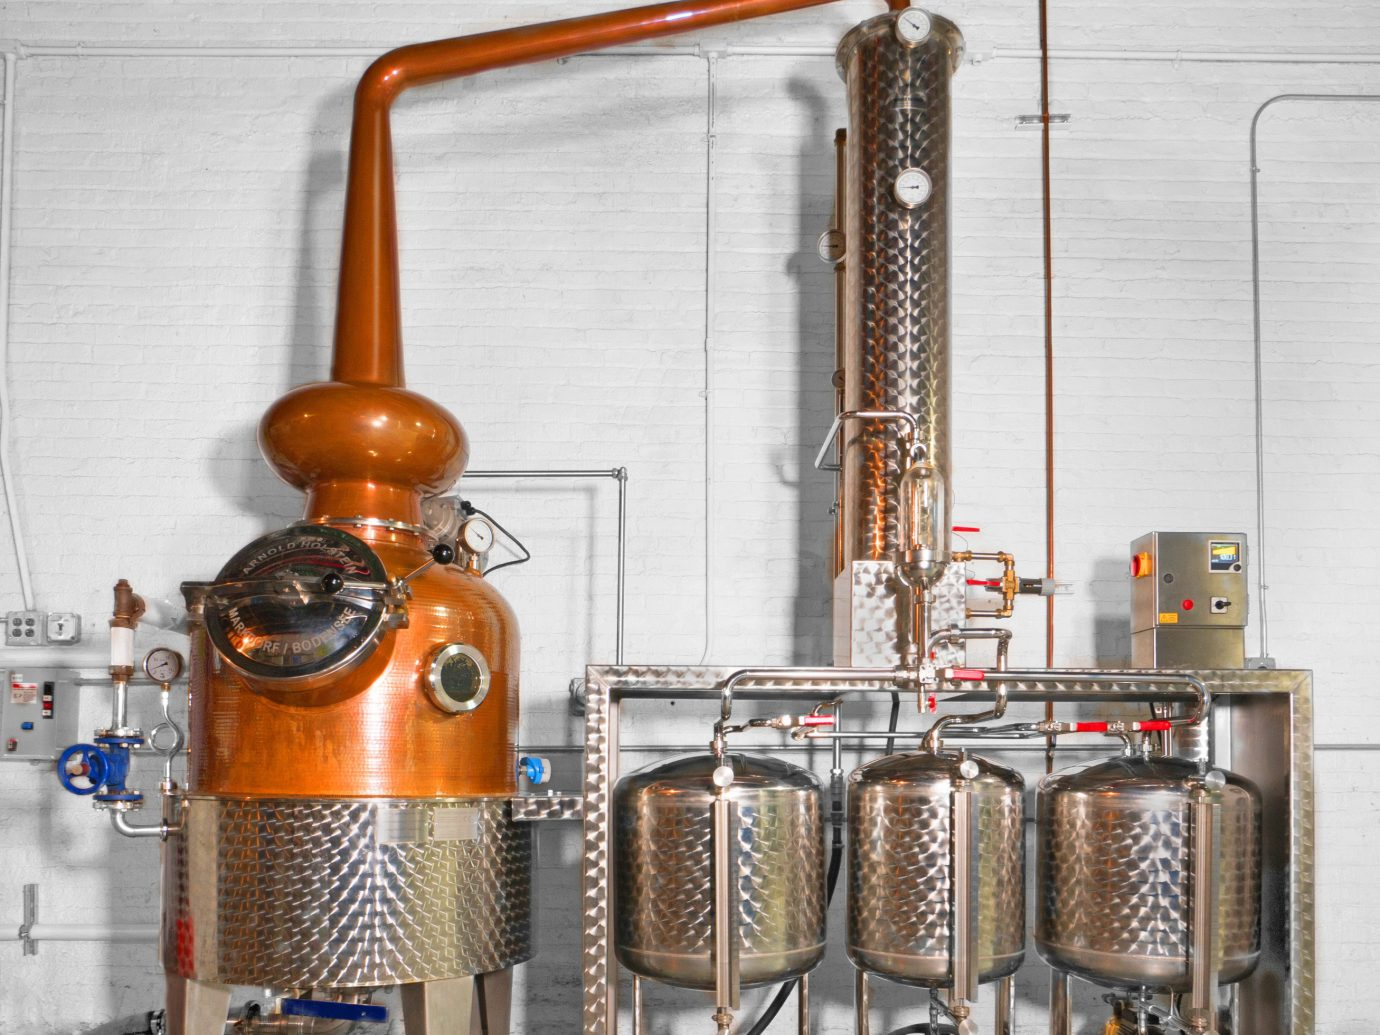 Brooklyn Food + Drink product machine brewery